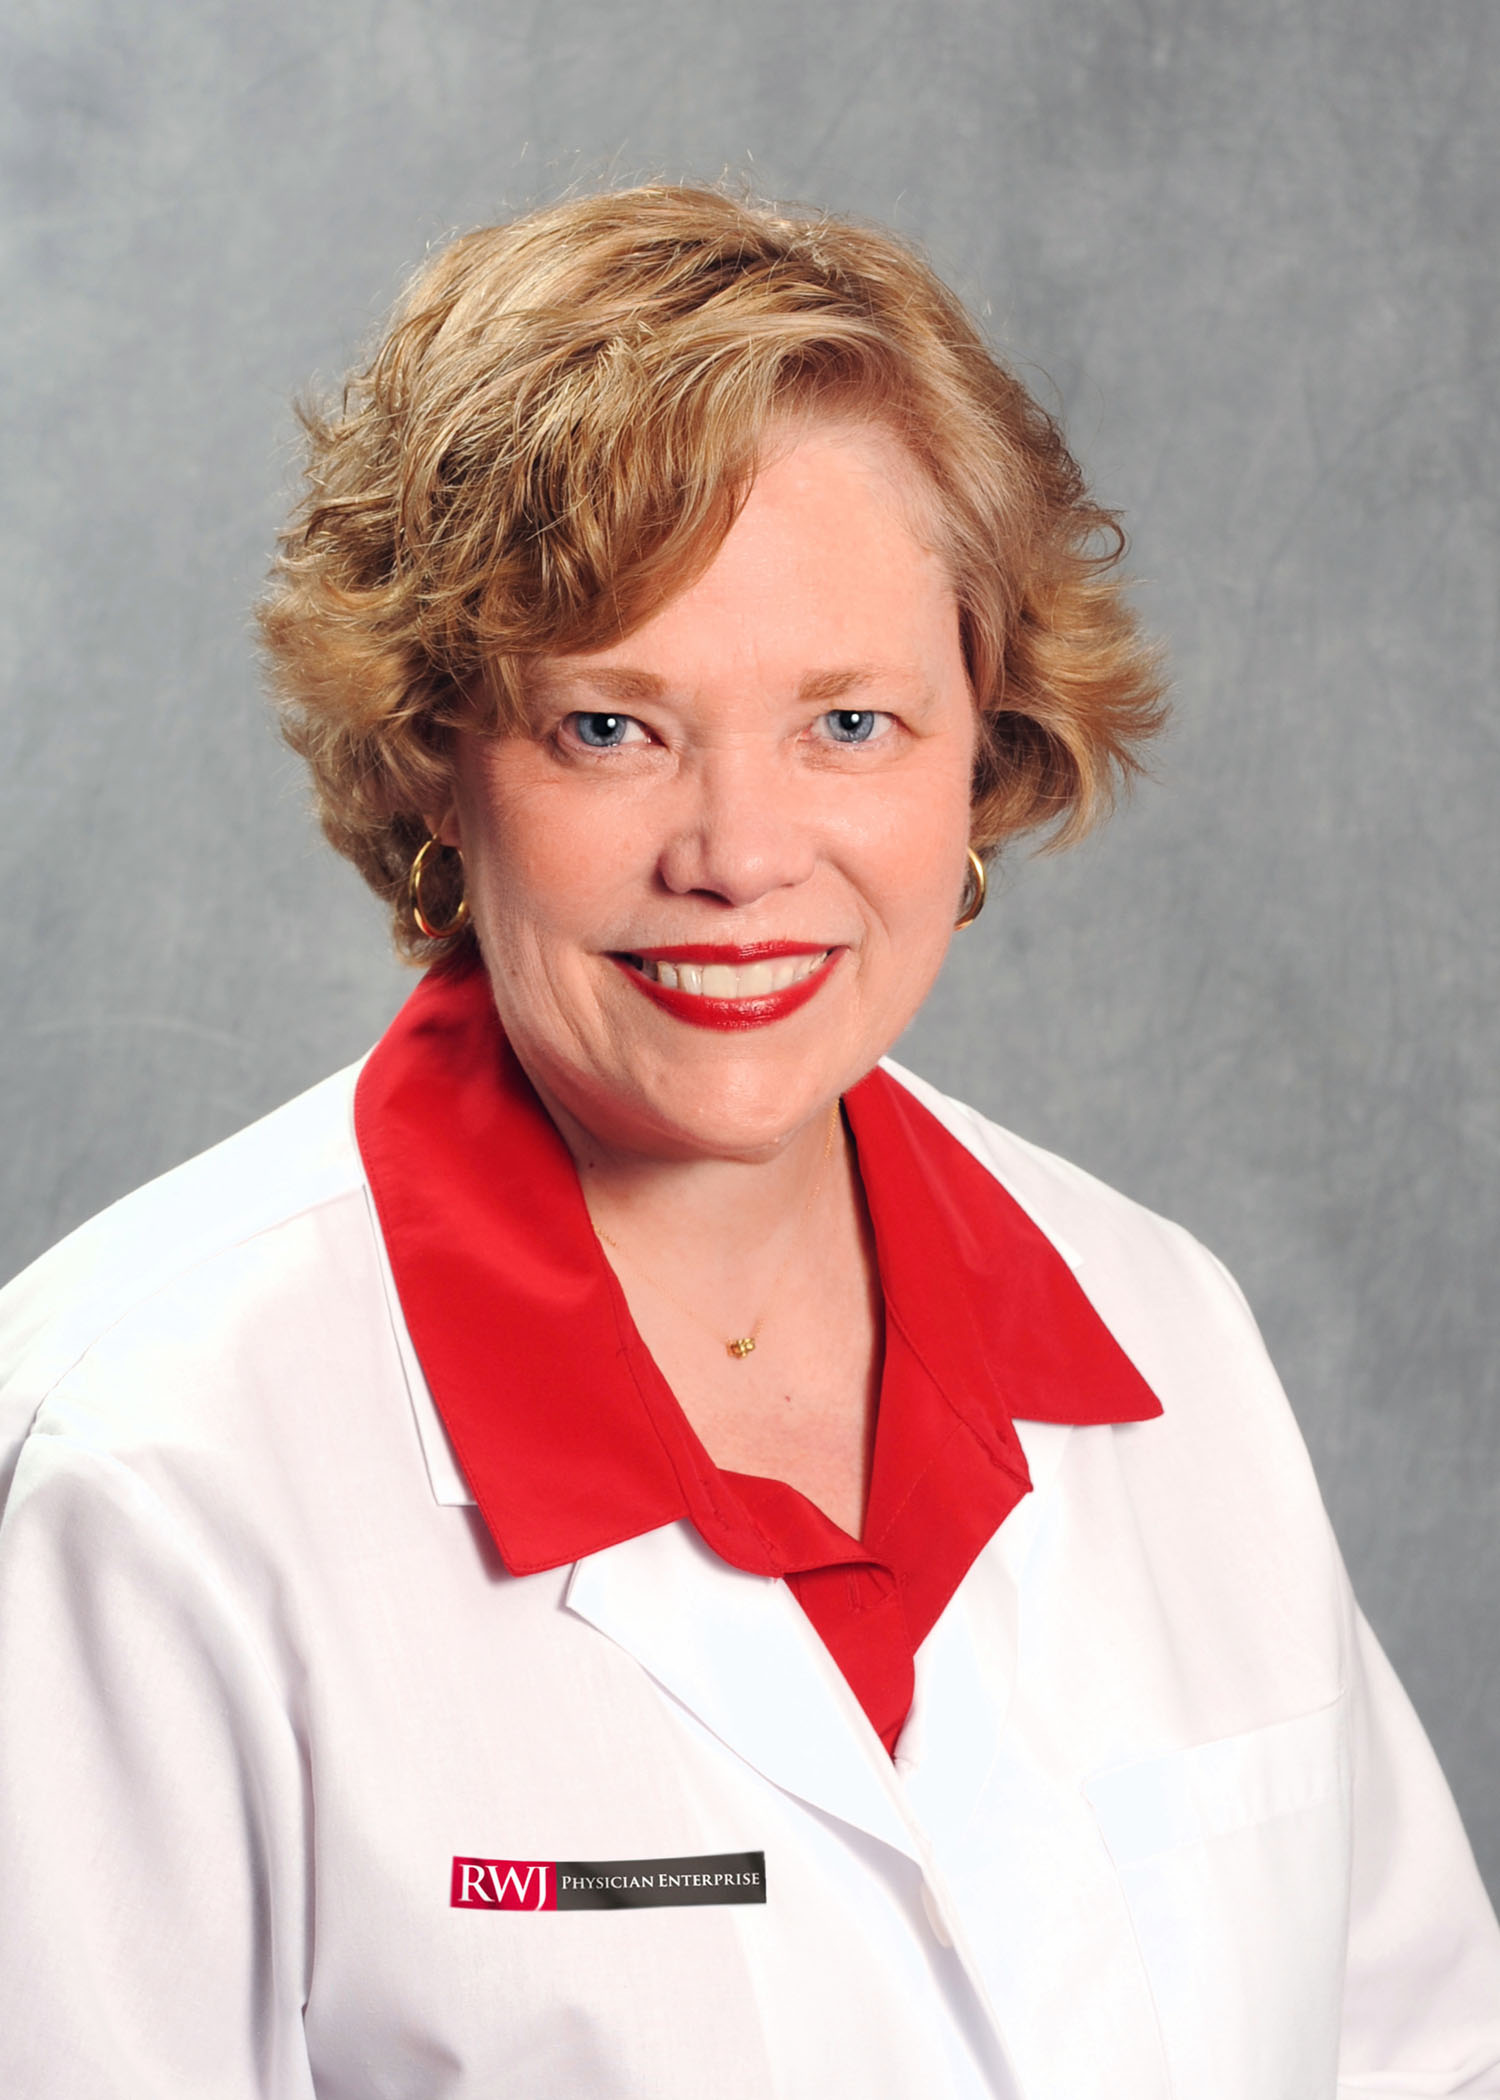 Sharon L Ryan, MD